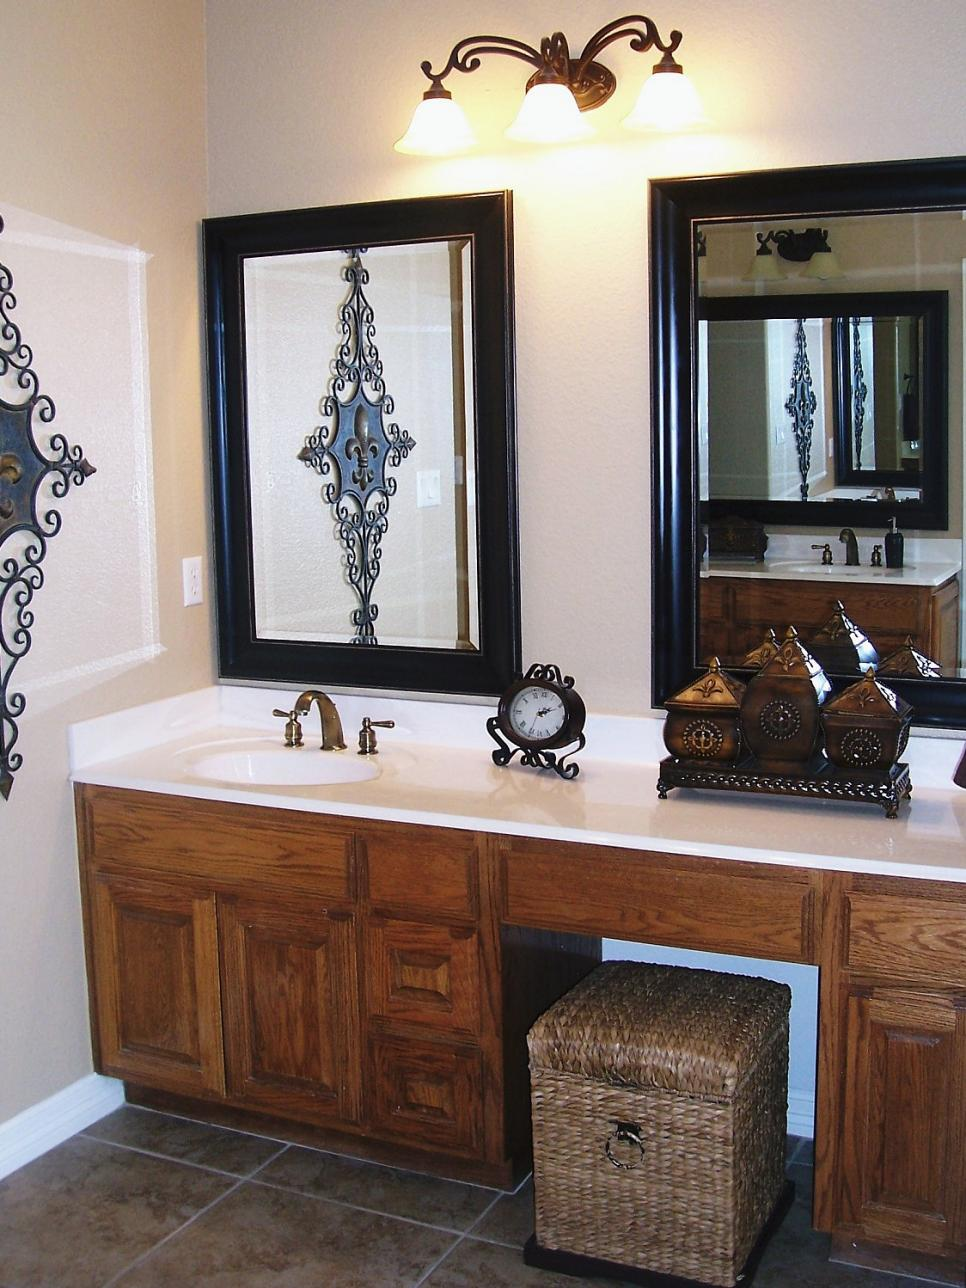 Image of: Small Bathroom Mirrors Frame